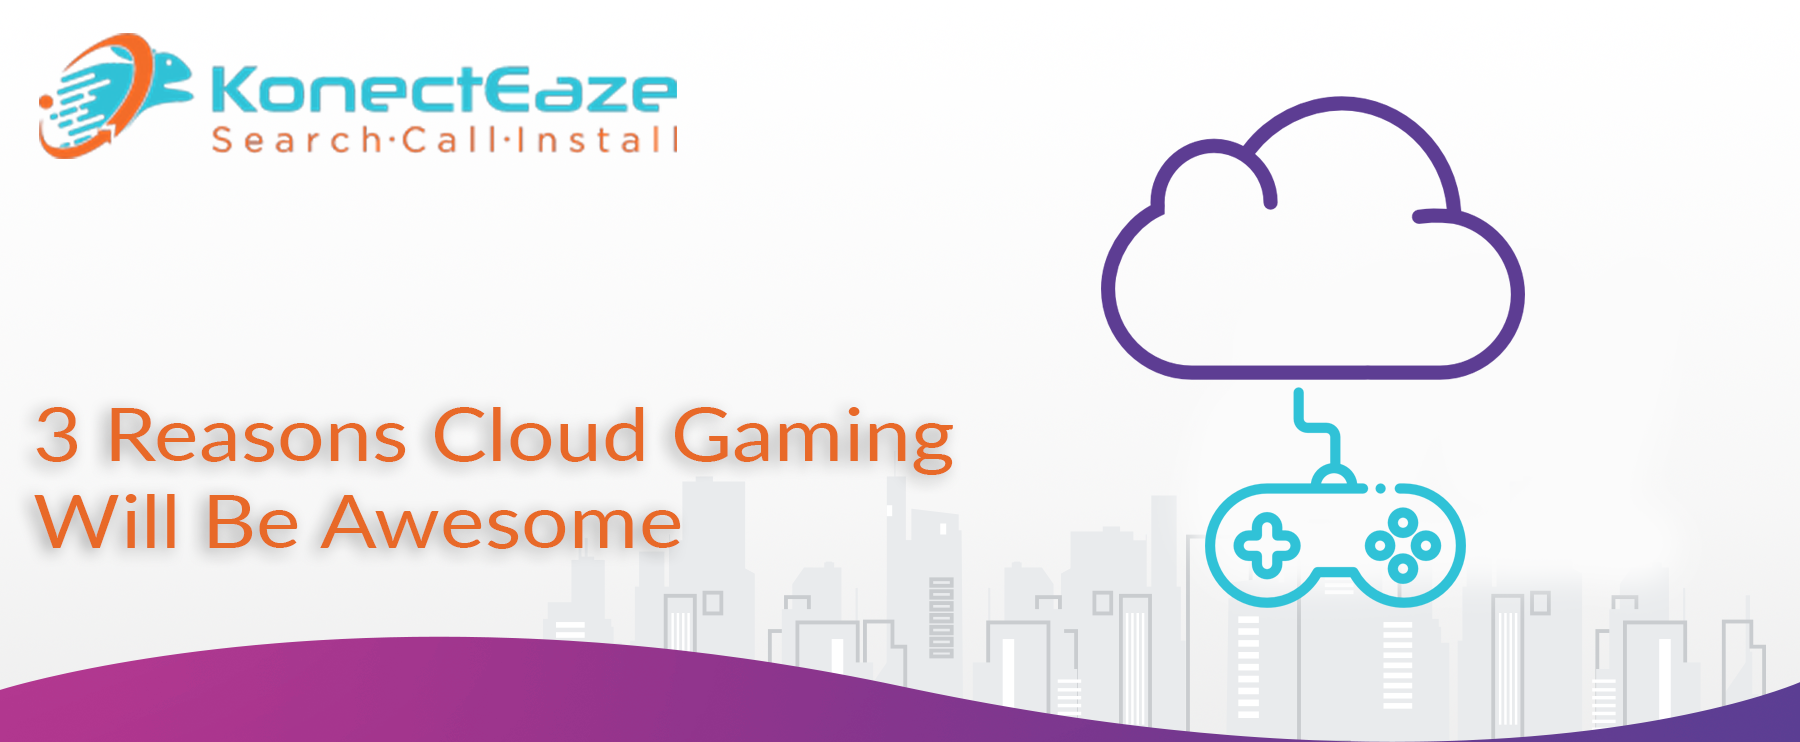 3 Reasons Cloud Gaming Will Be Awesome